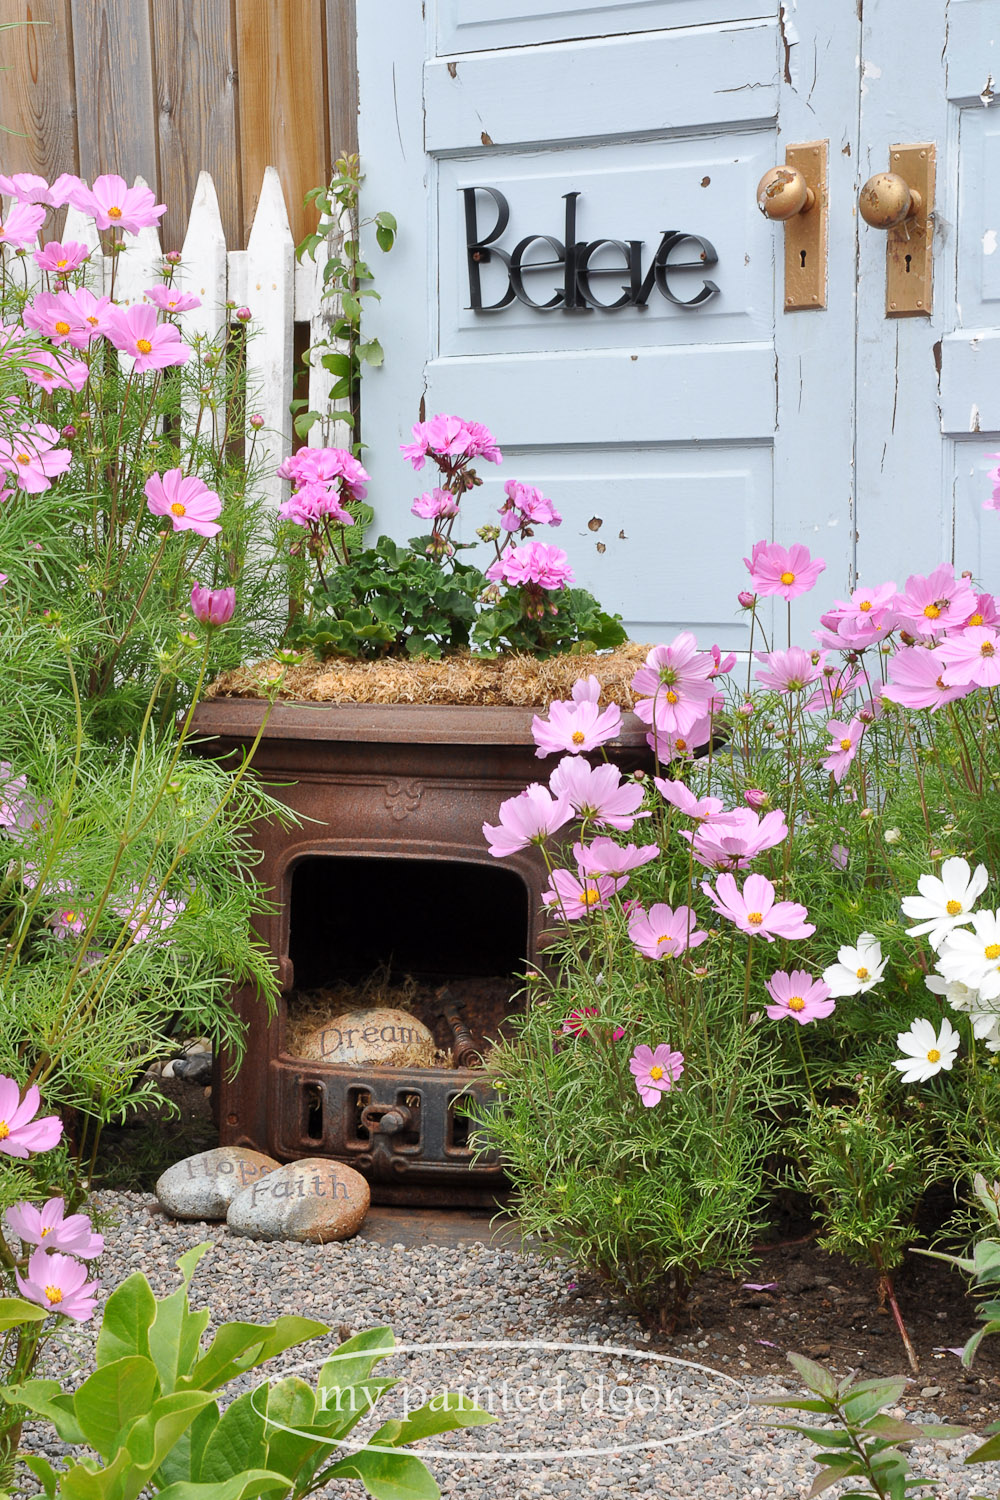 Antique firebox in front of repurposed doors